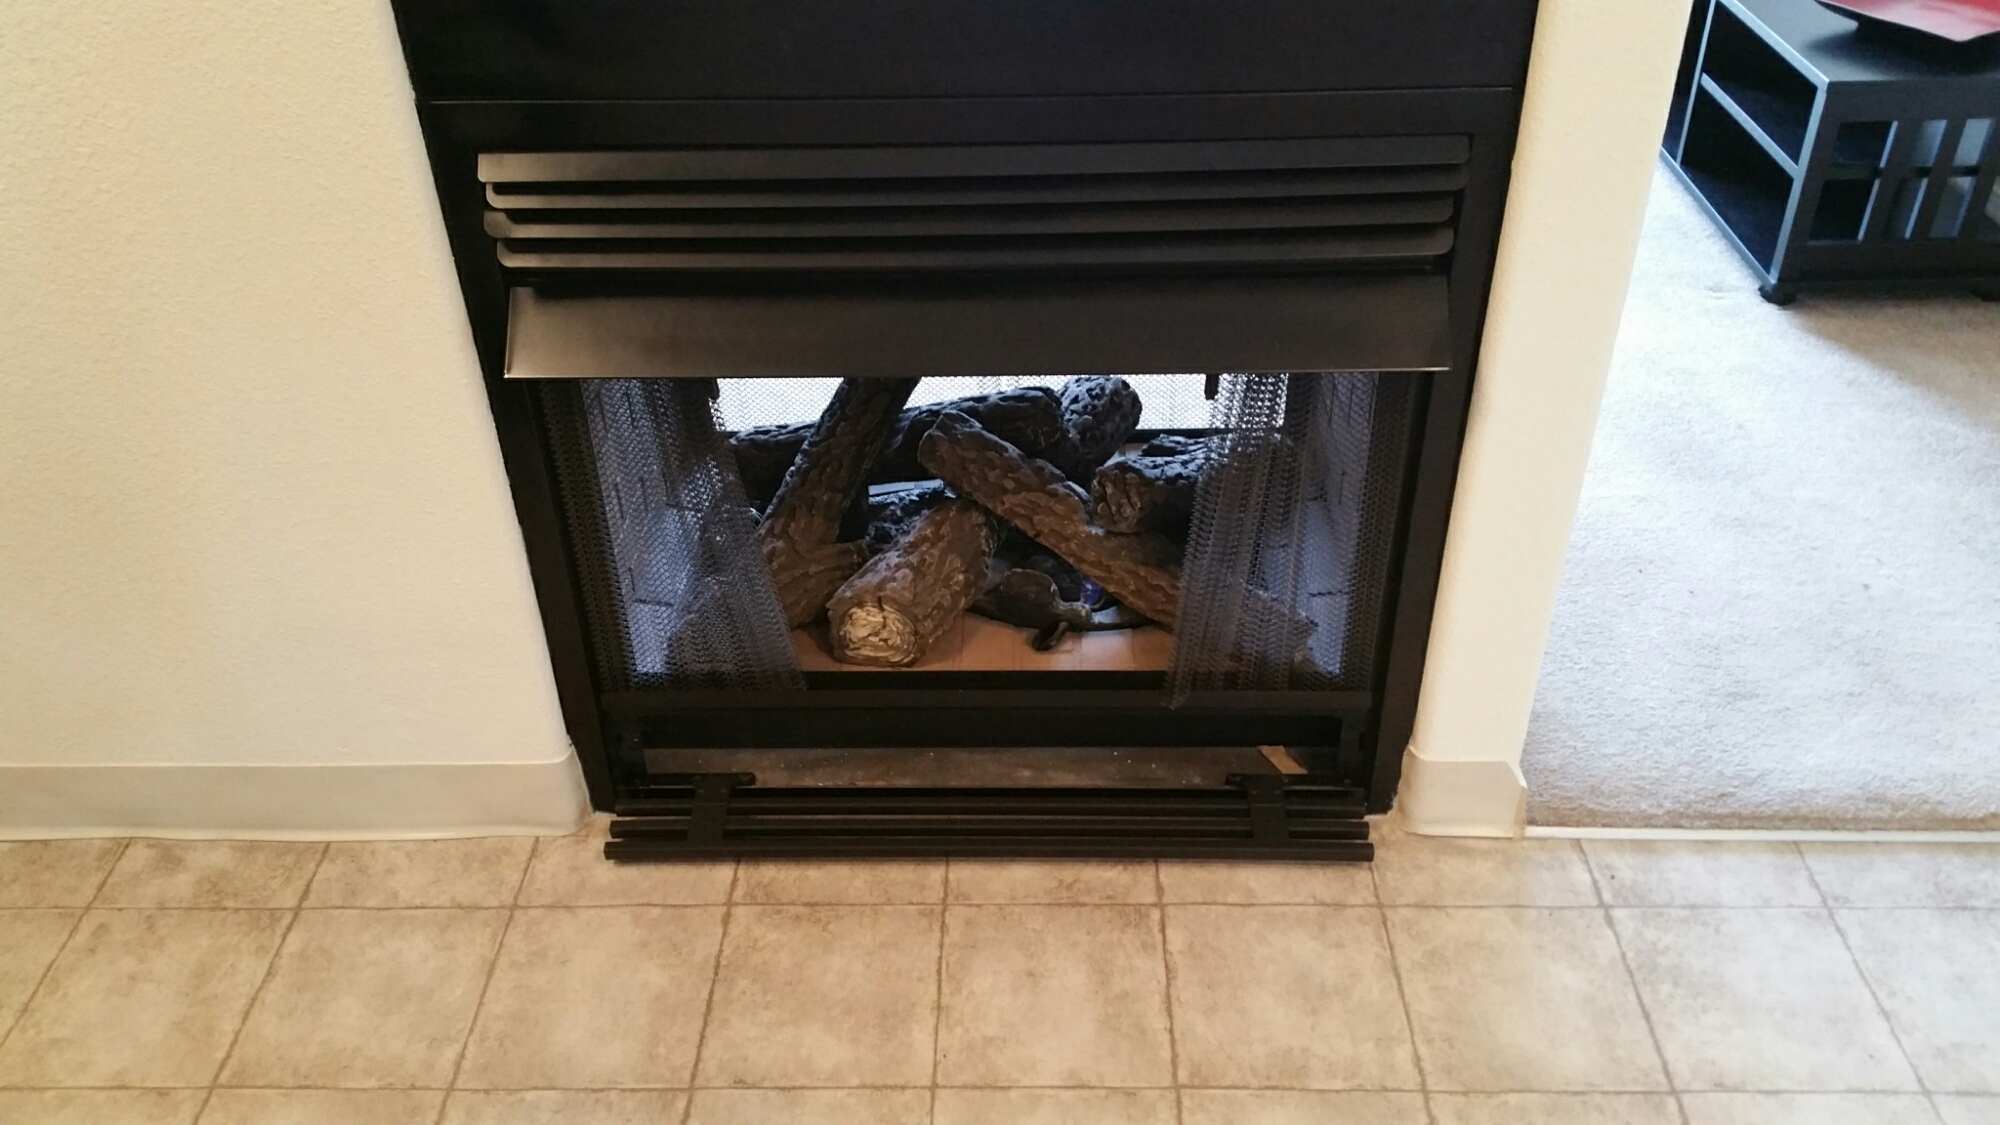 Gas Fireplace Pilot Light Out Gas Fireplace Venting 45th Parallel Home Inspection